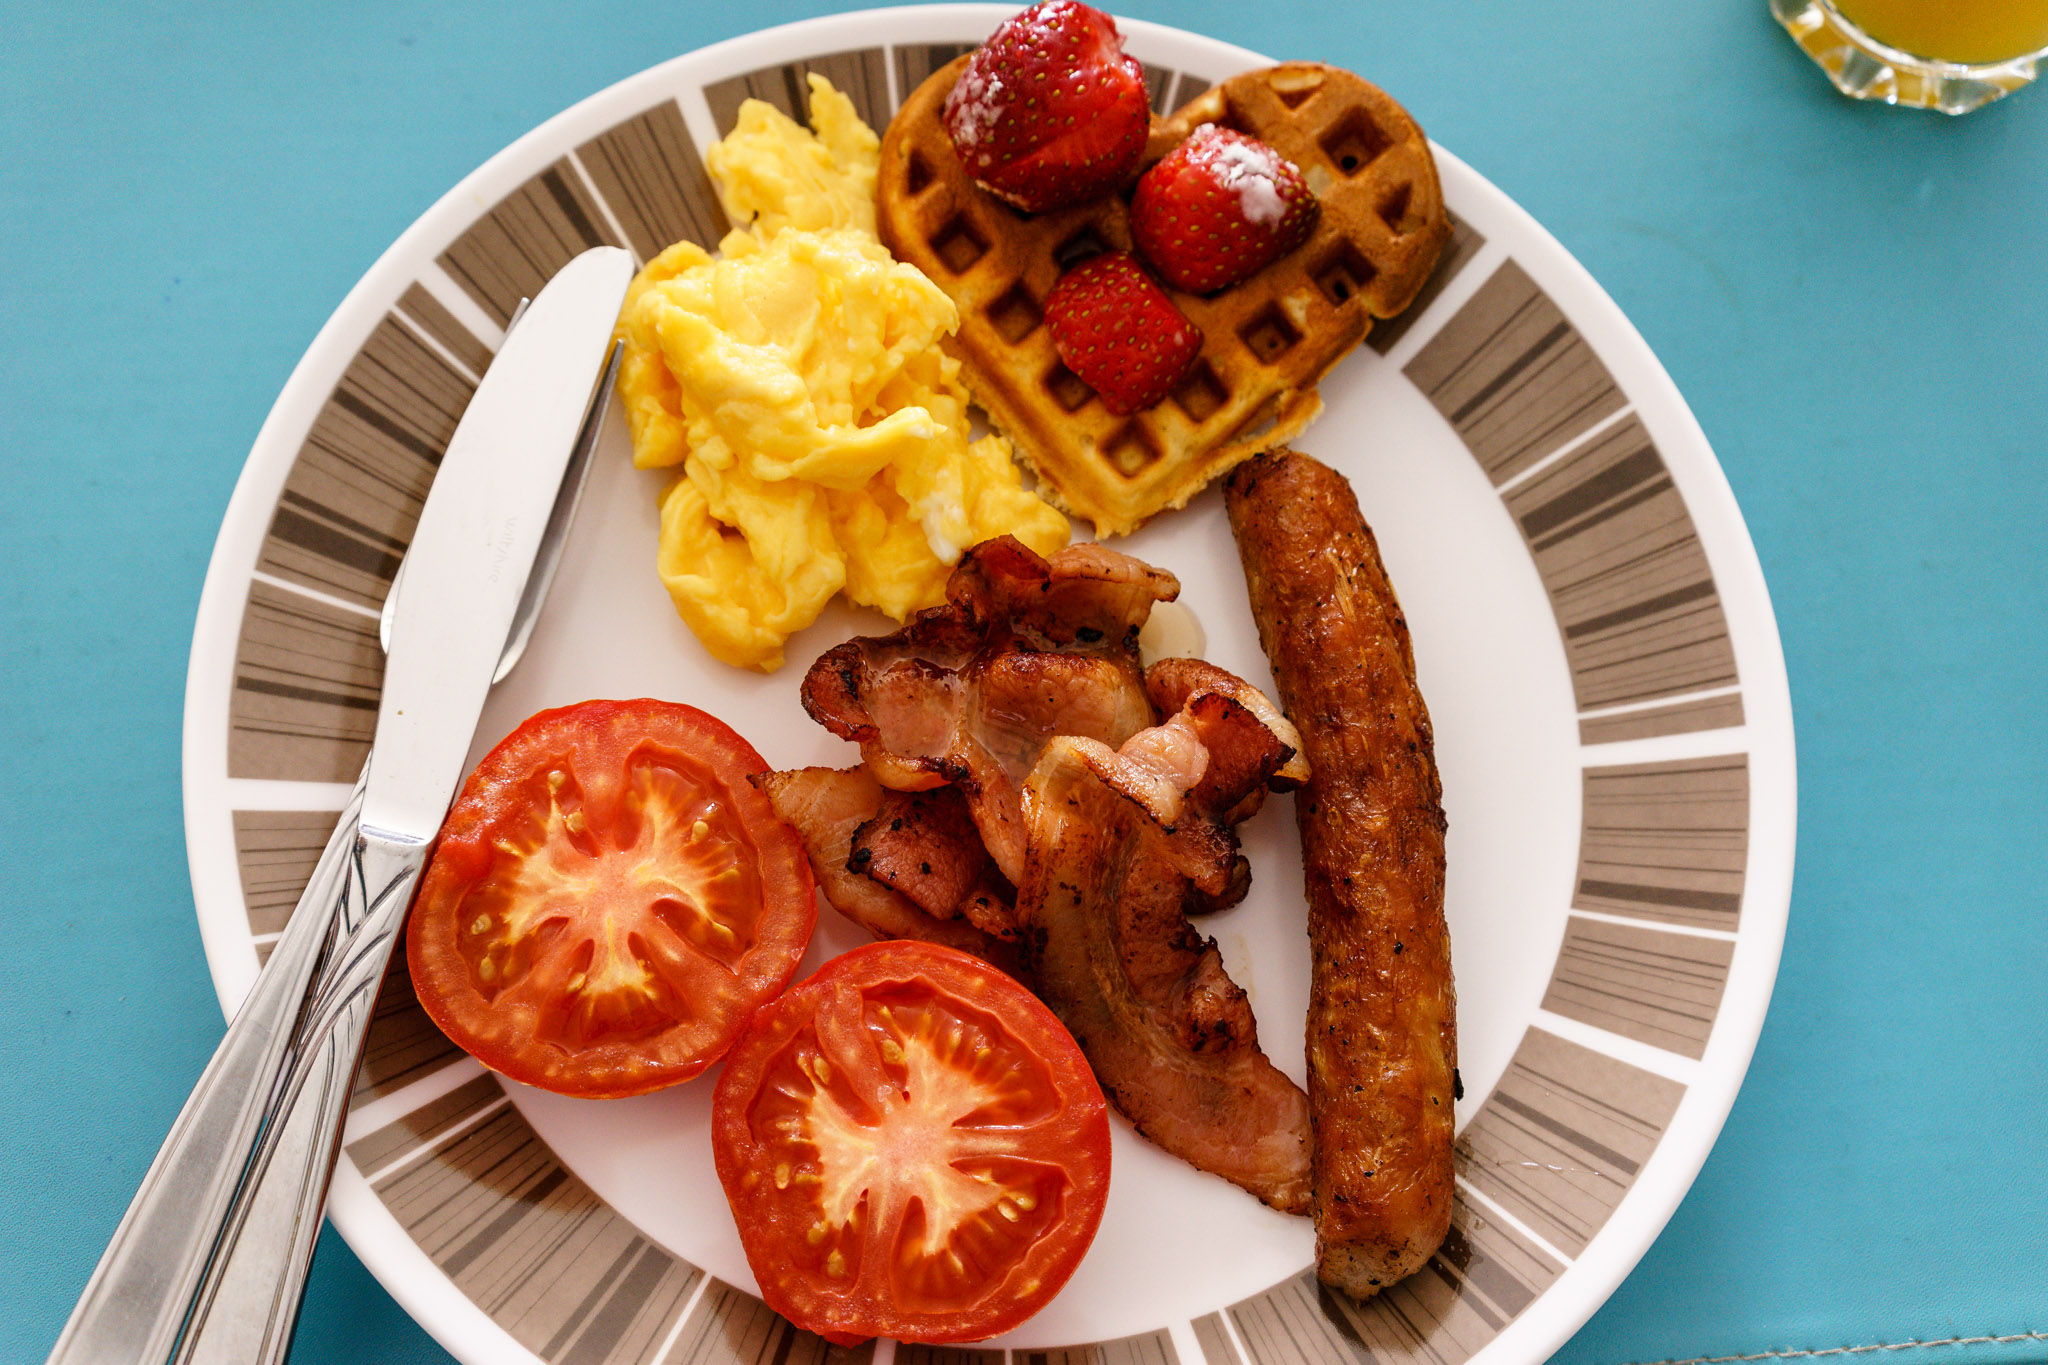 Sunday breakfast in Brisbane. Bacon, sausage and egg with waffle and strawberries and tomato.